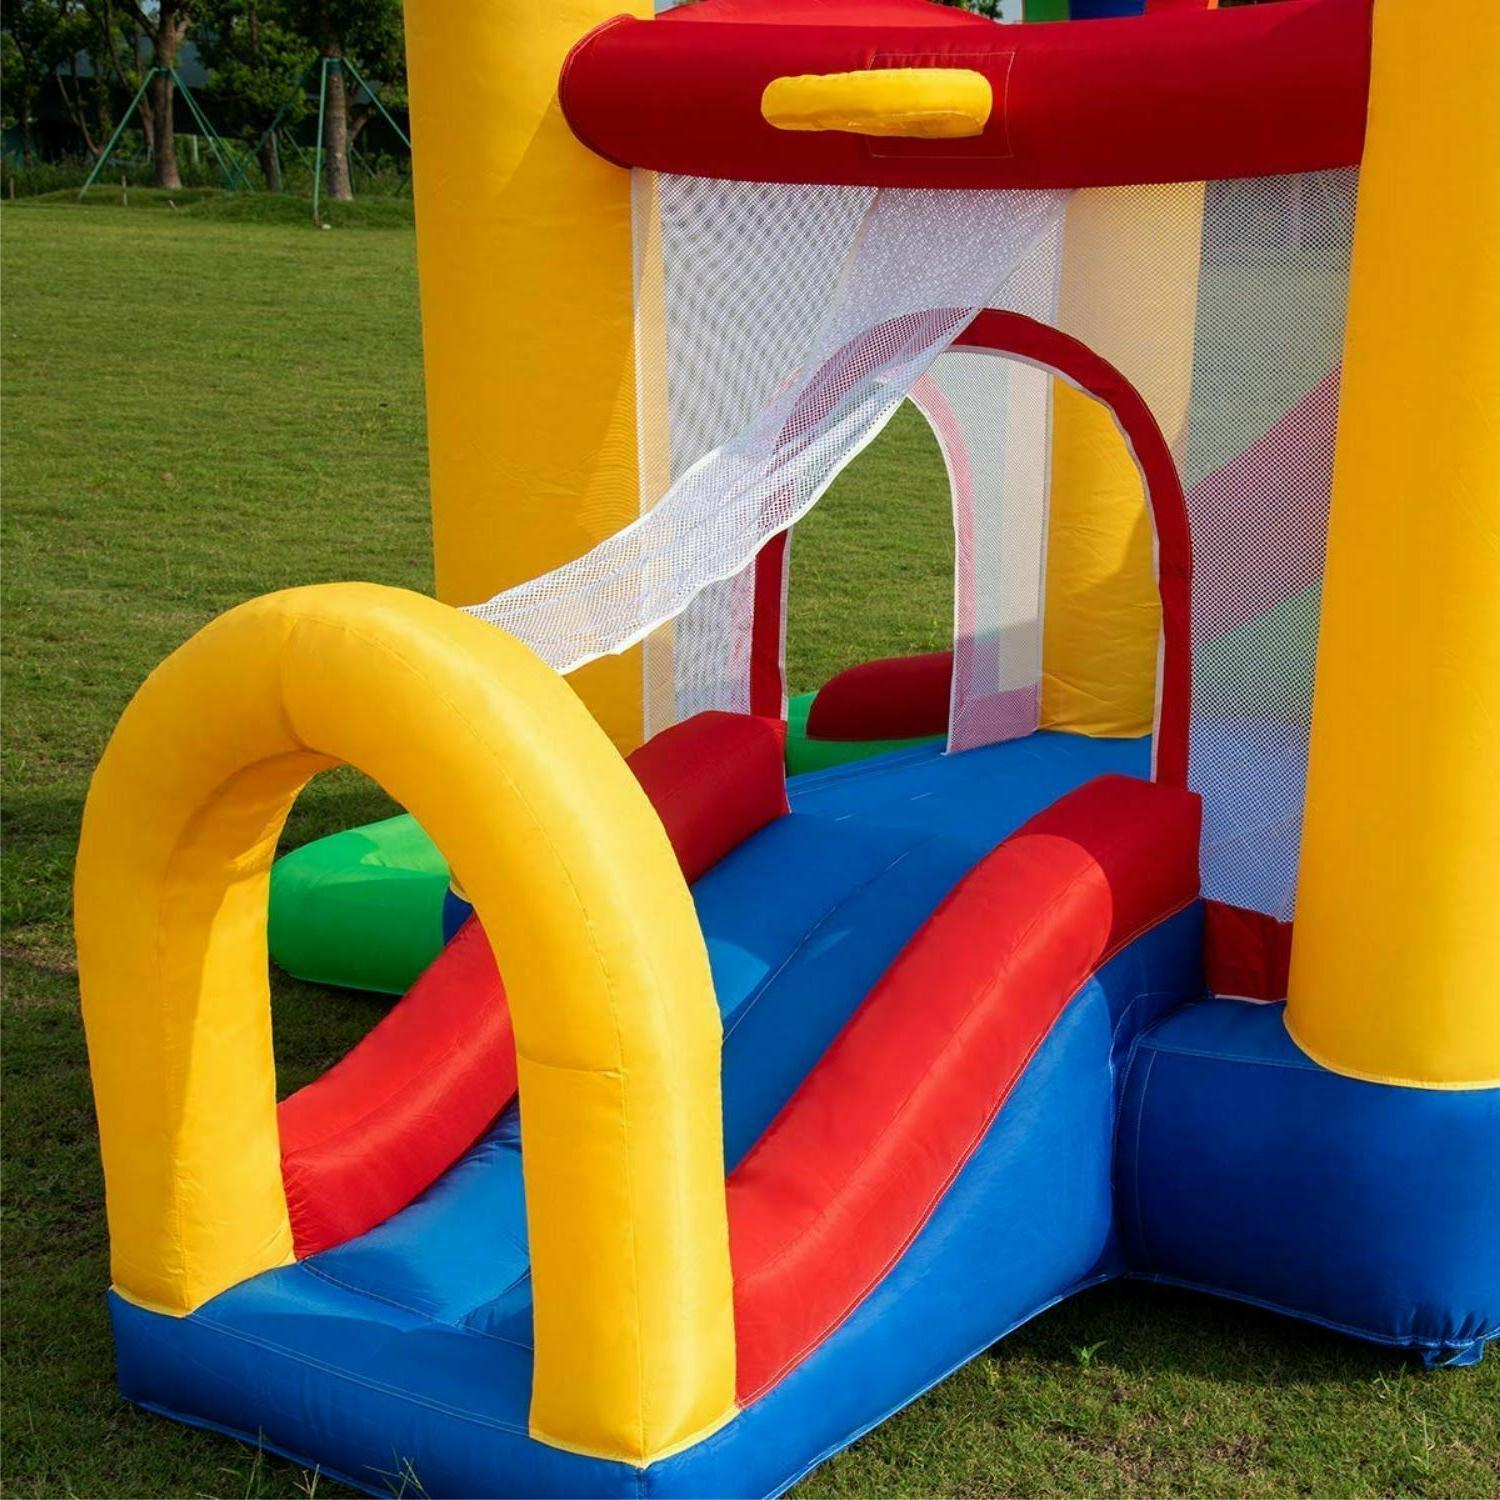 Commercial House Jumping Playhouse